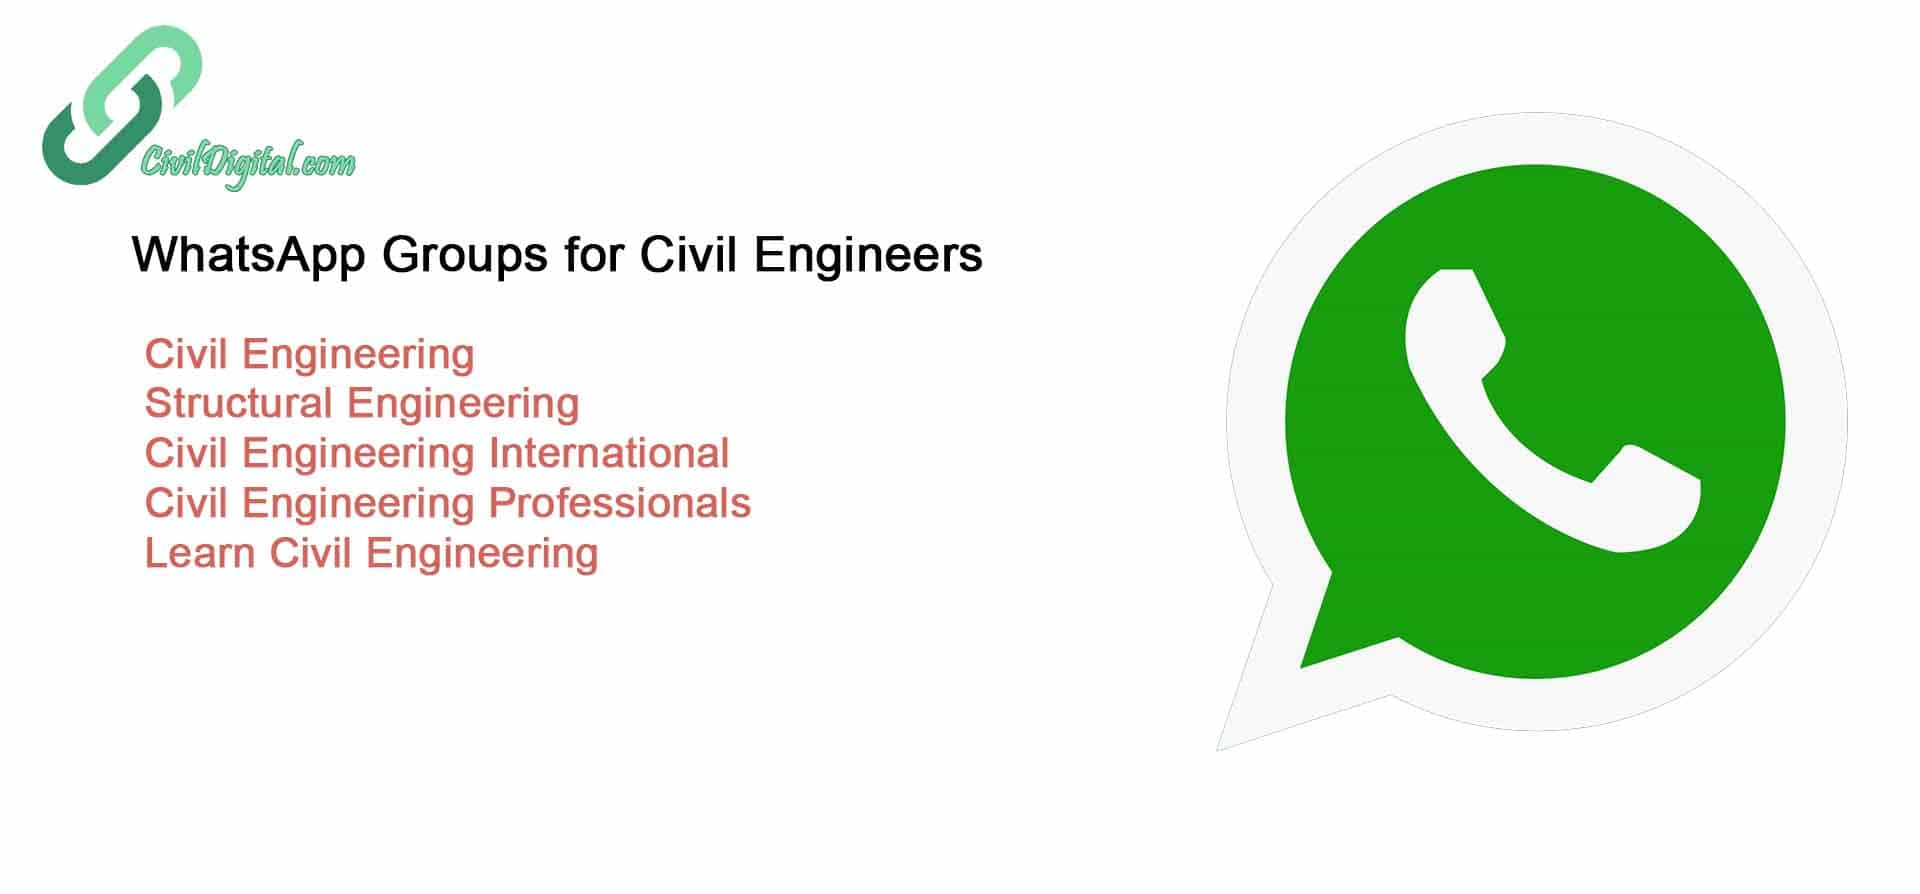 objective questions interview questions for civil engineers civil engineering whatsapp group